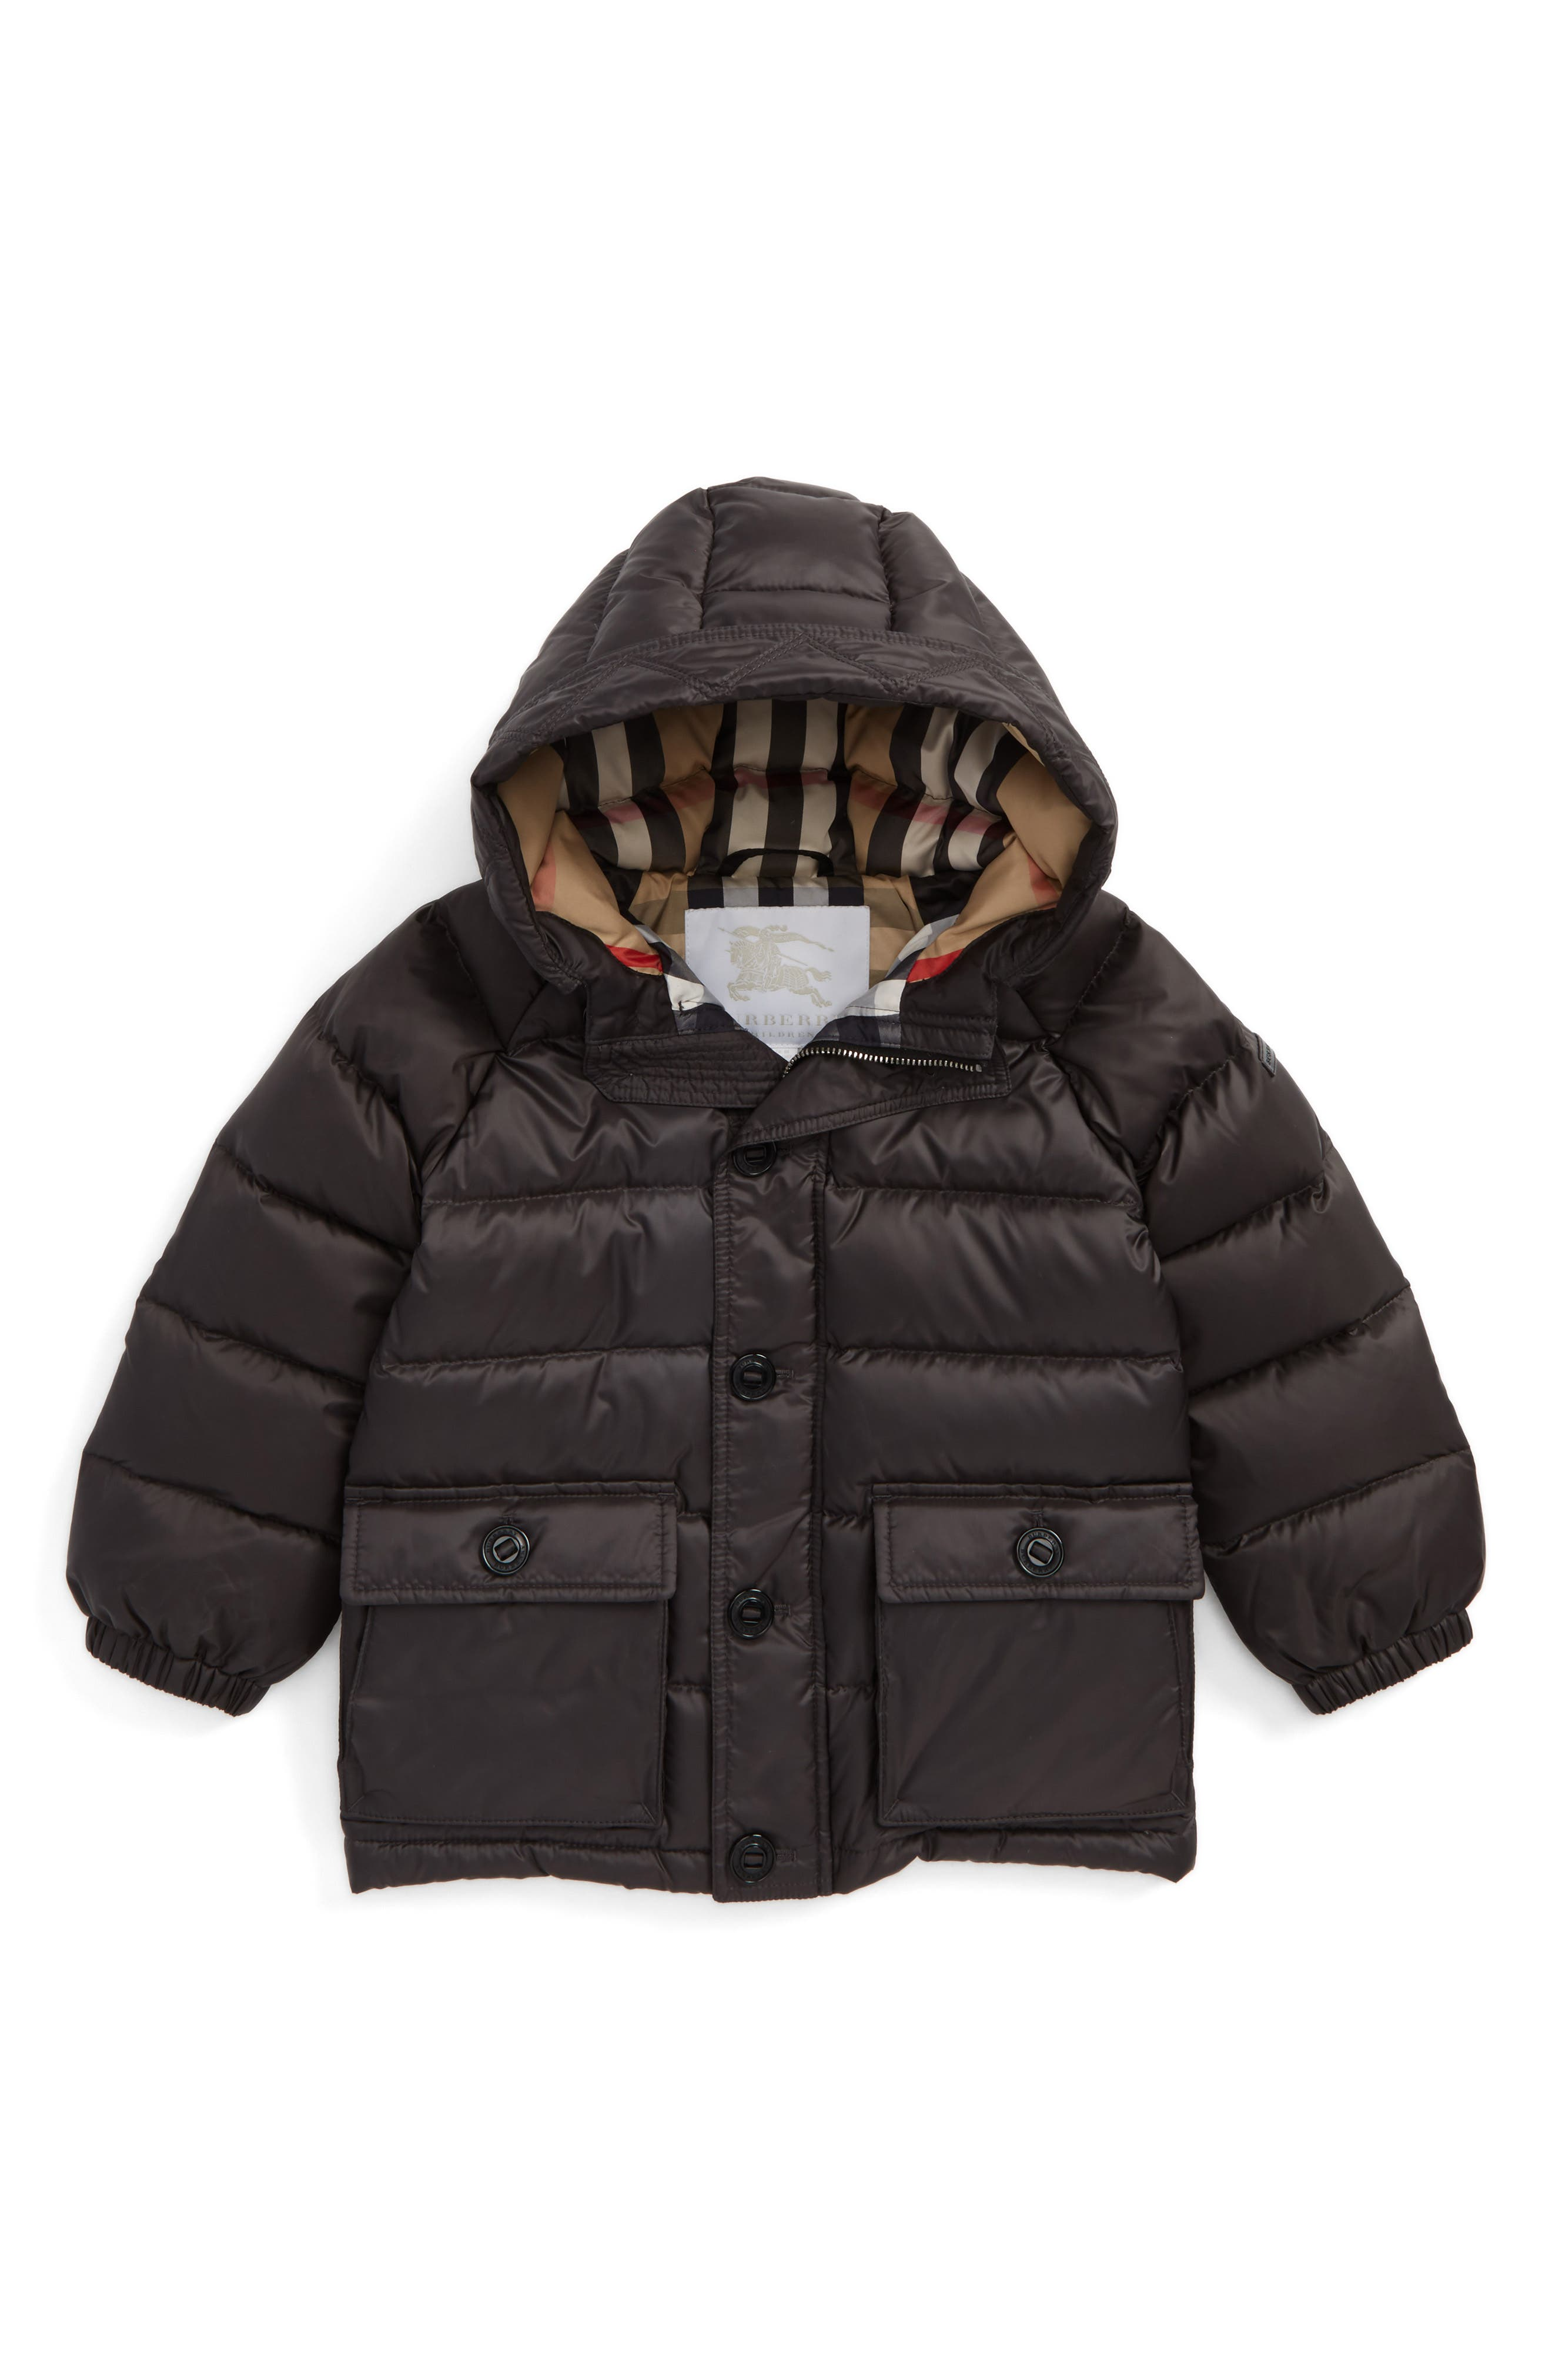 Lachlan Hooded Down Jacket,                         Main,                         color, Charcoal